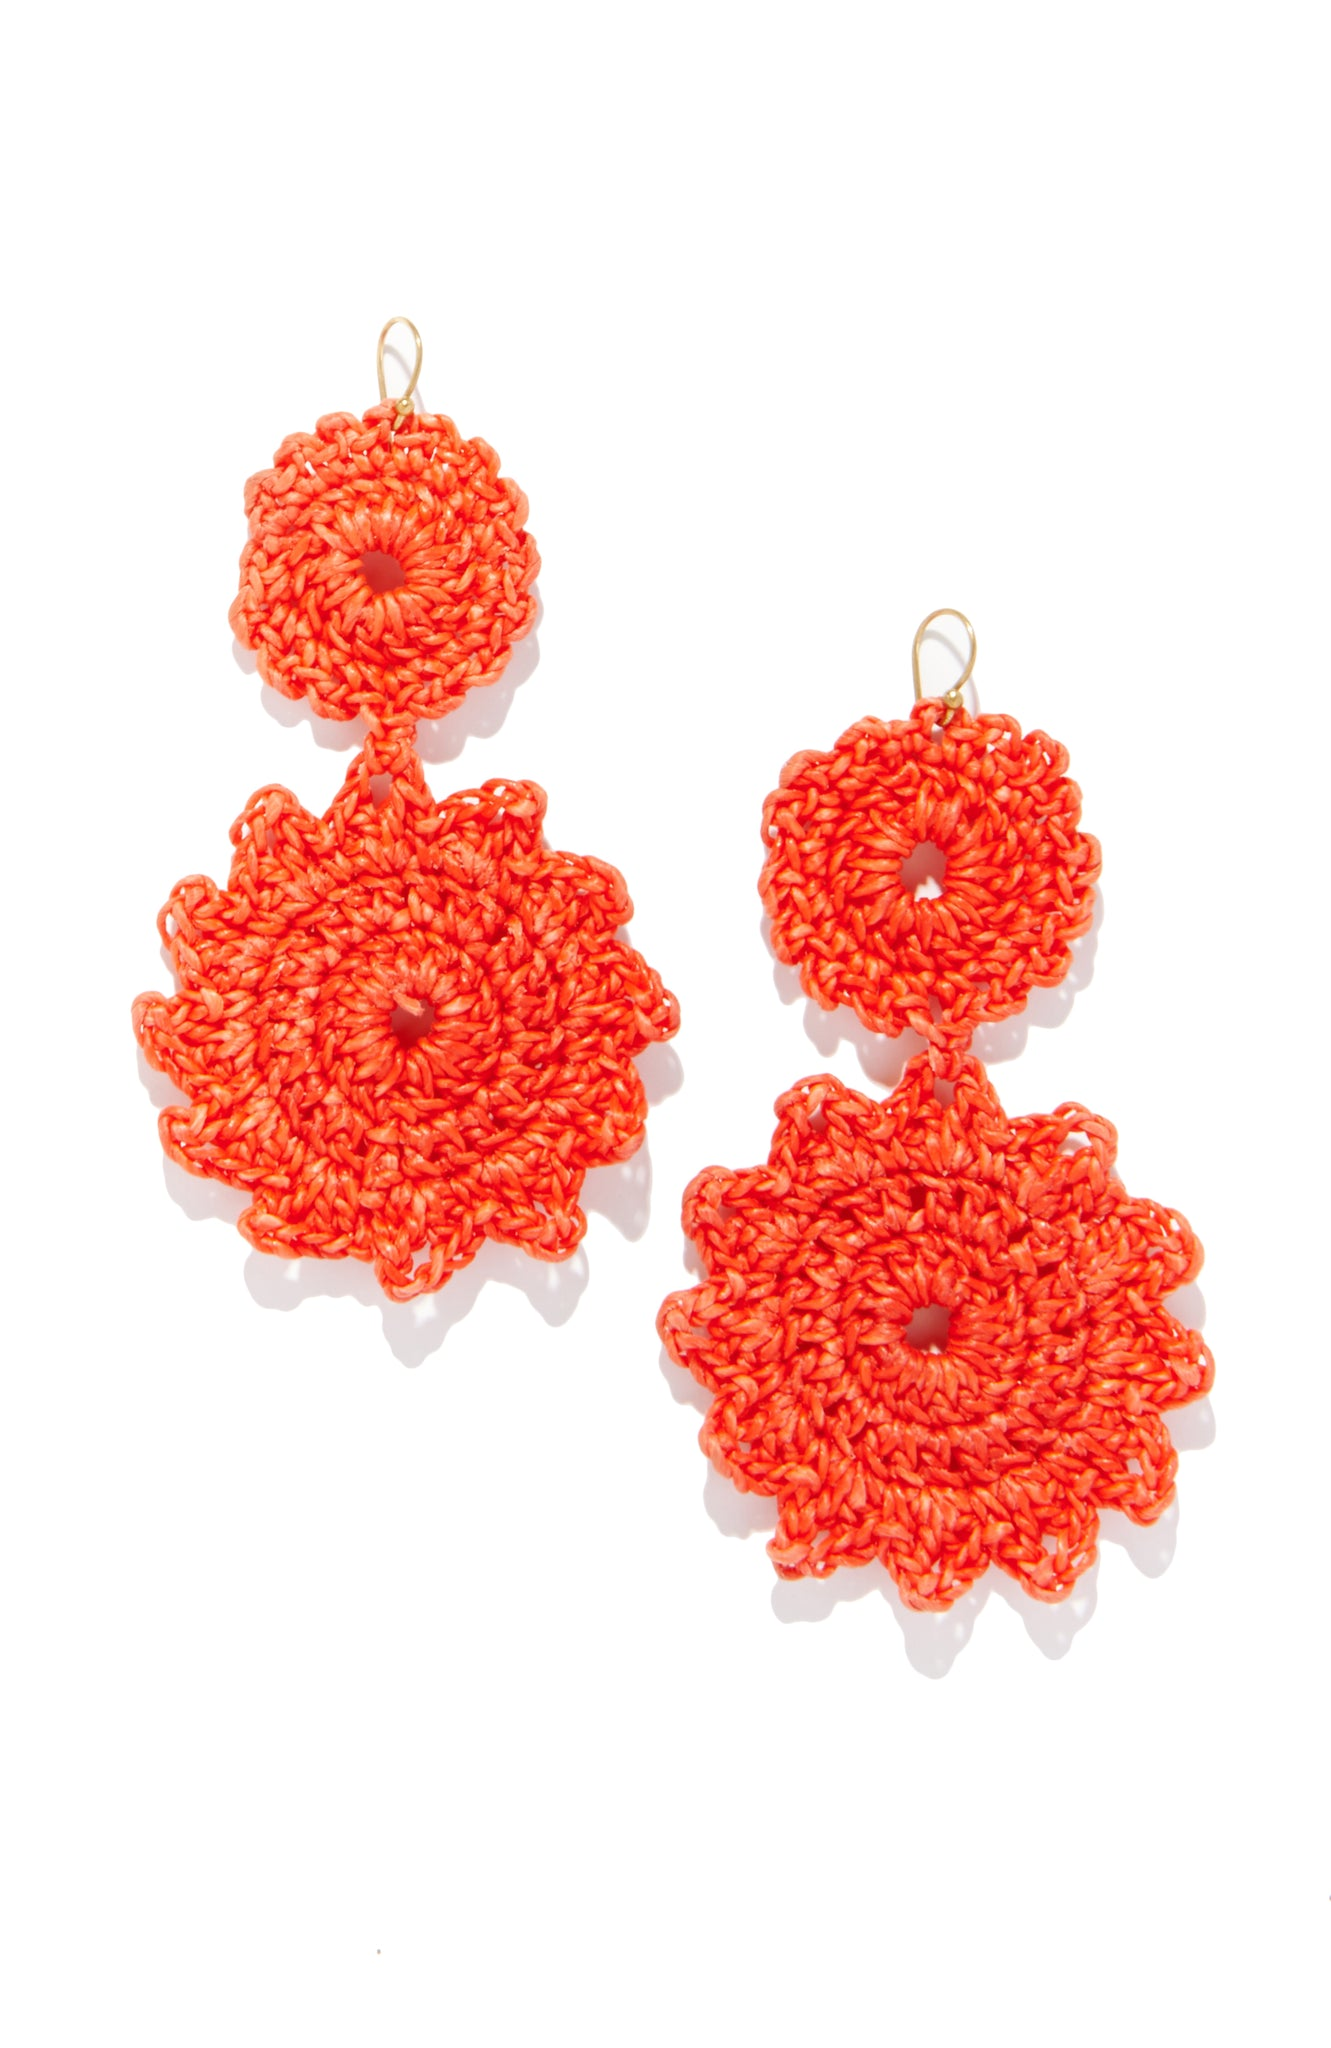 MACRAME EARRINGS - Coral